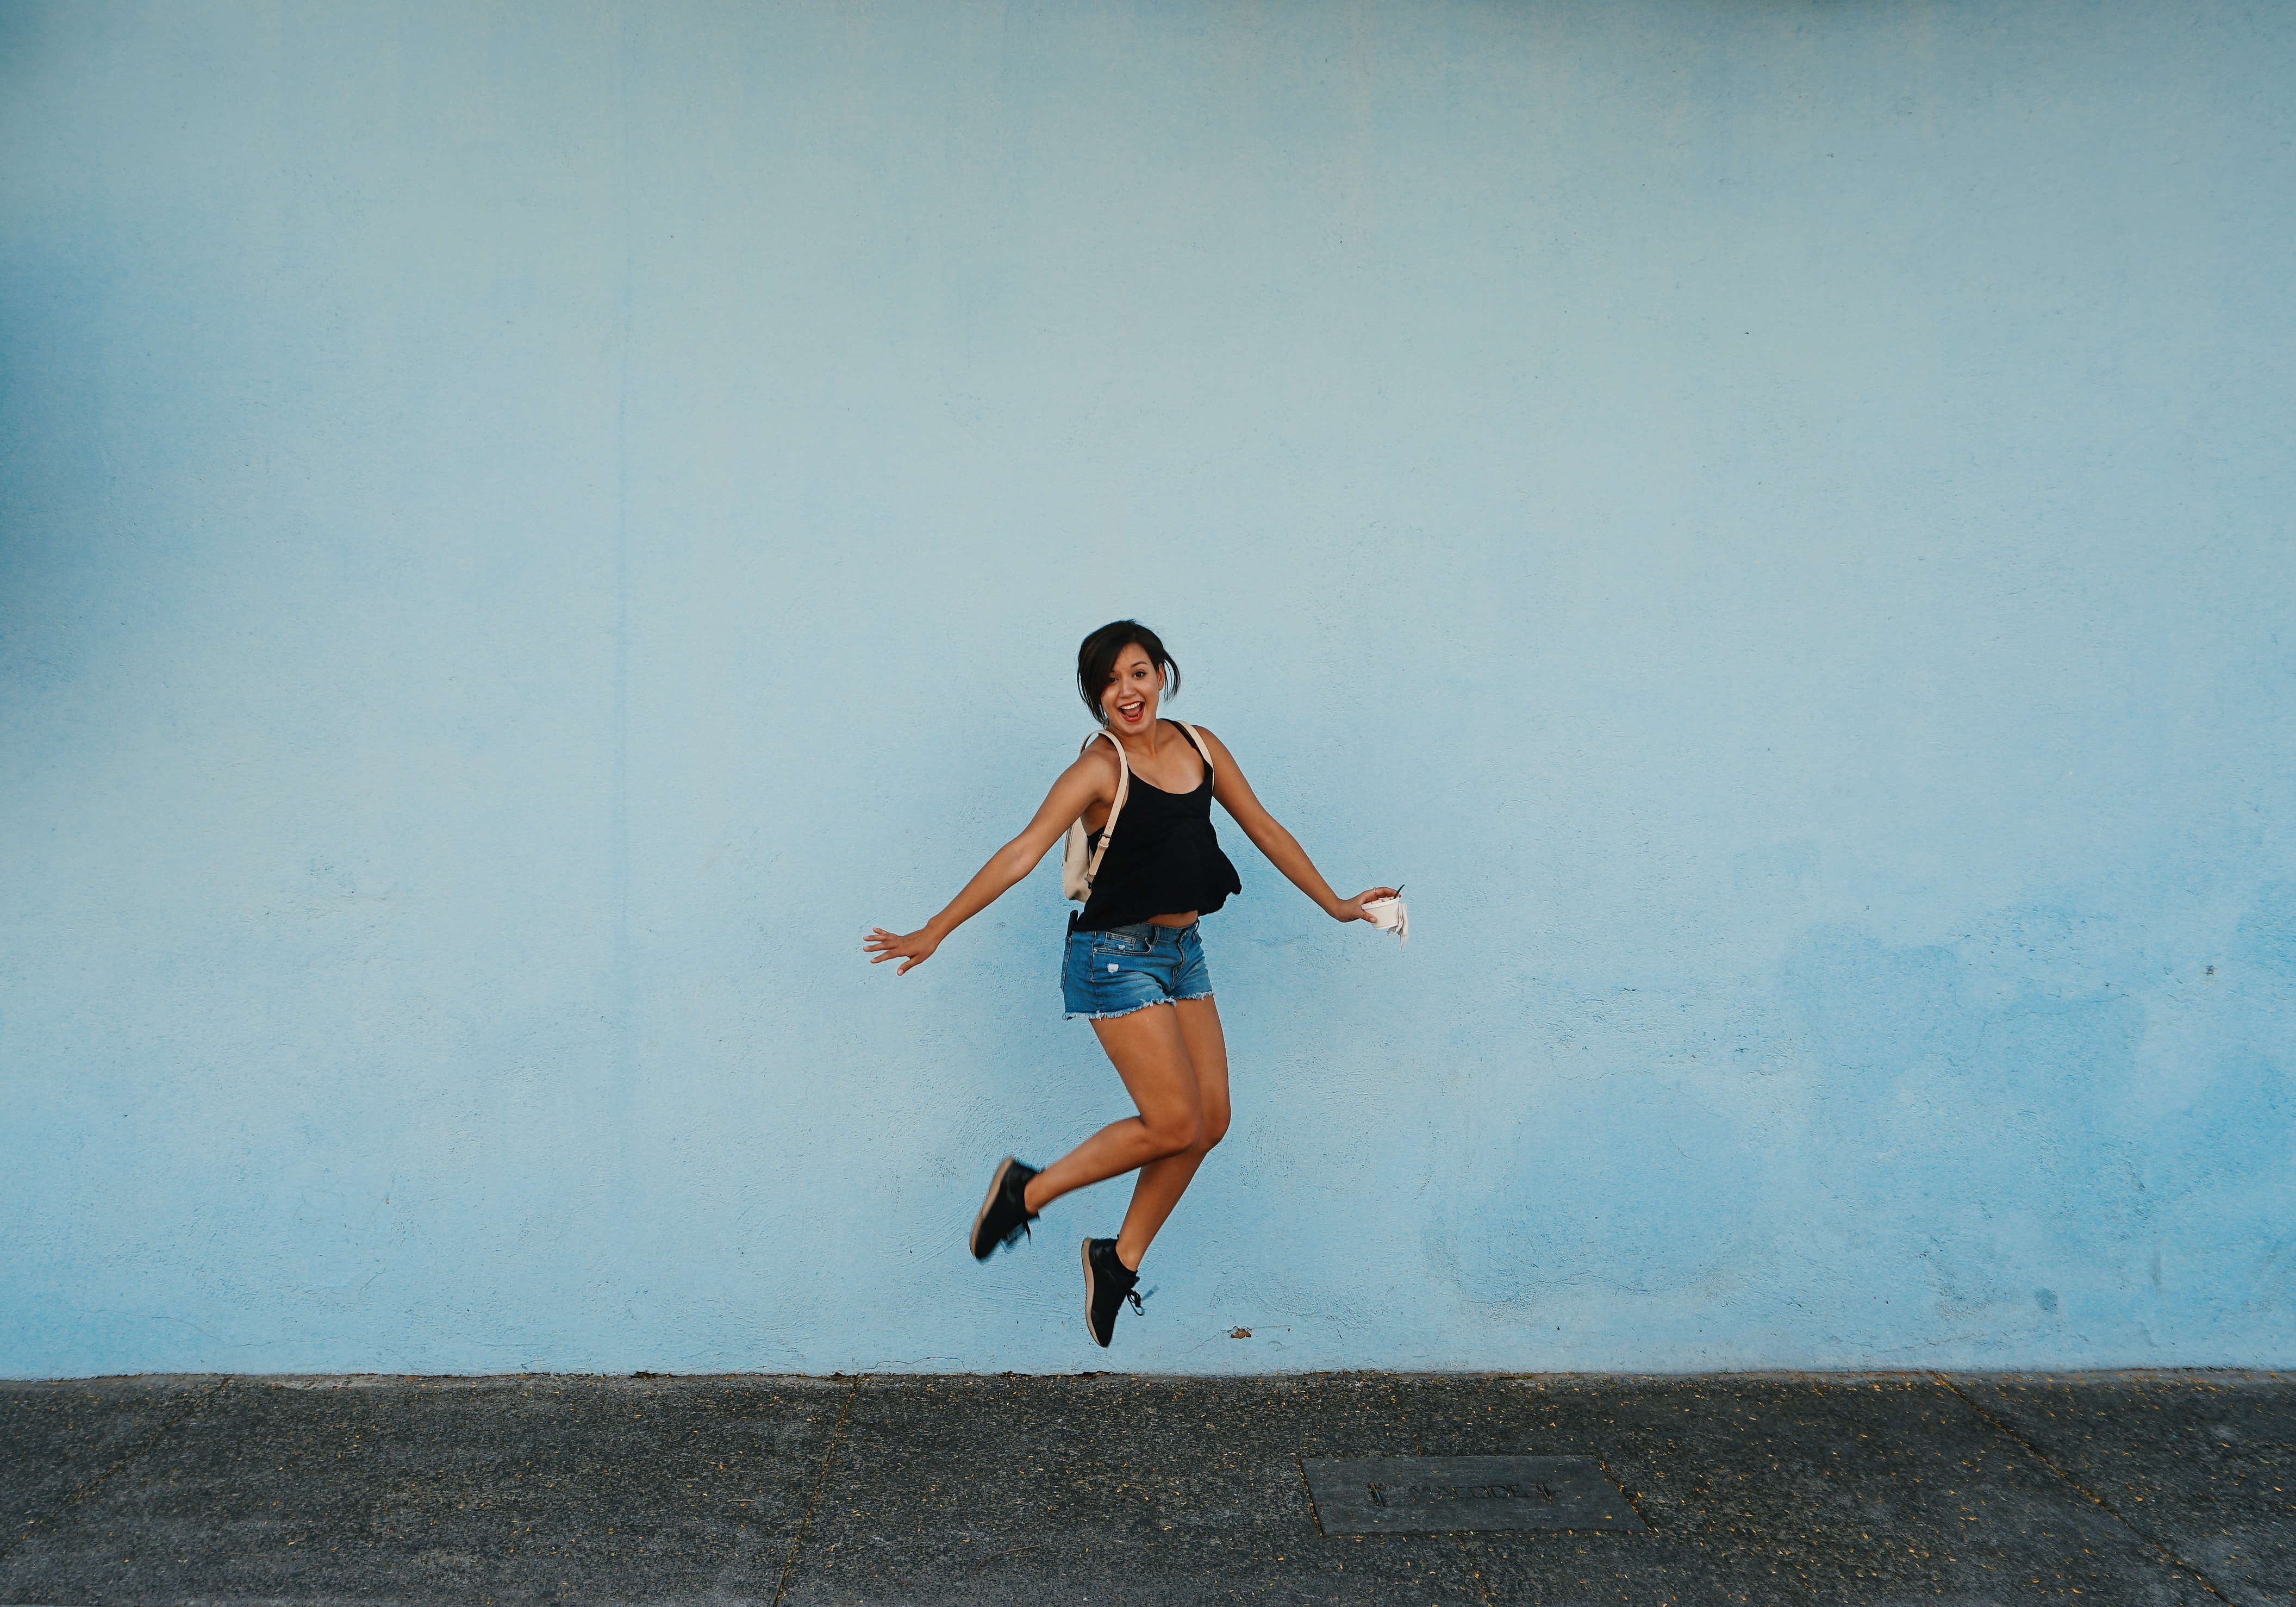 jumping woman on gray ground under white cloud blue skies